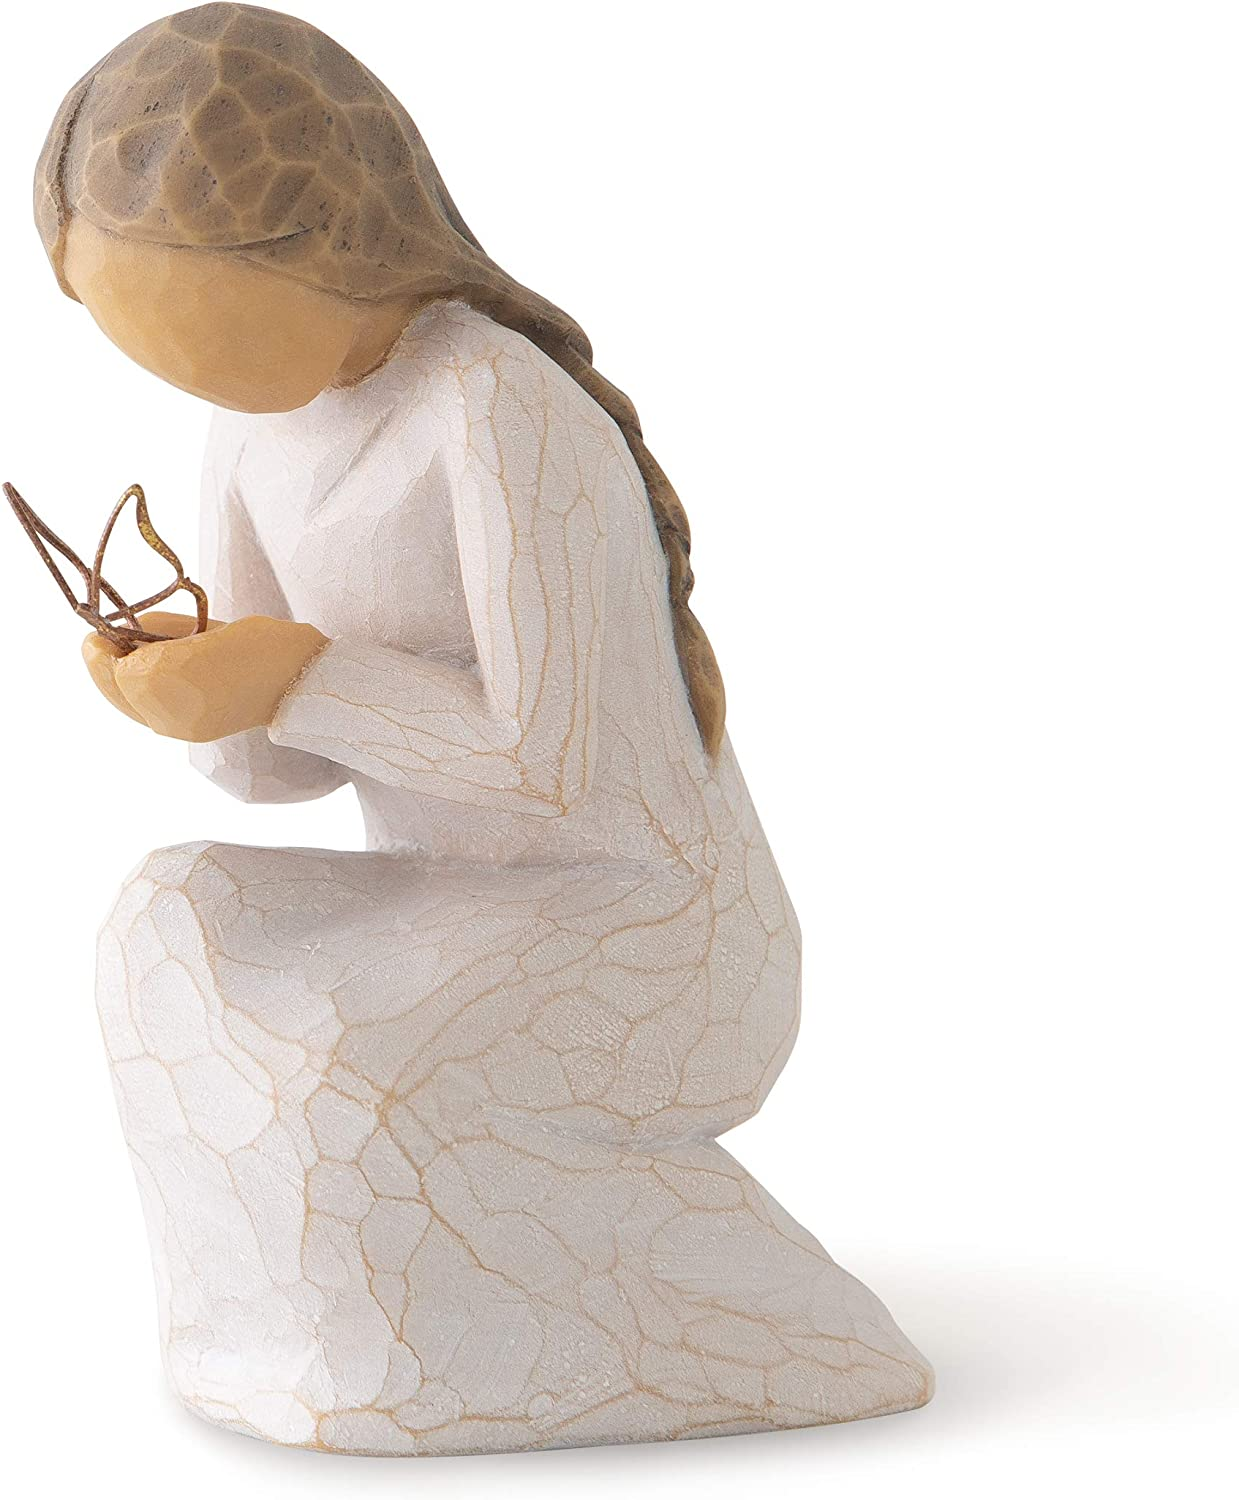 Willow Tree Quiet Wonder, Sculpted Hand-Painted Figure